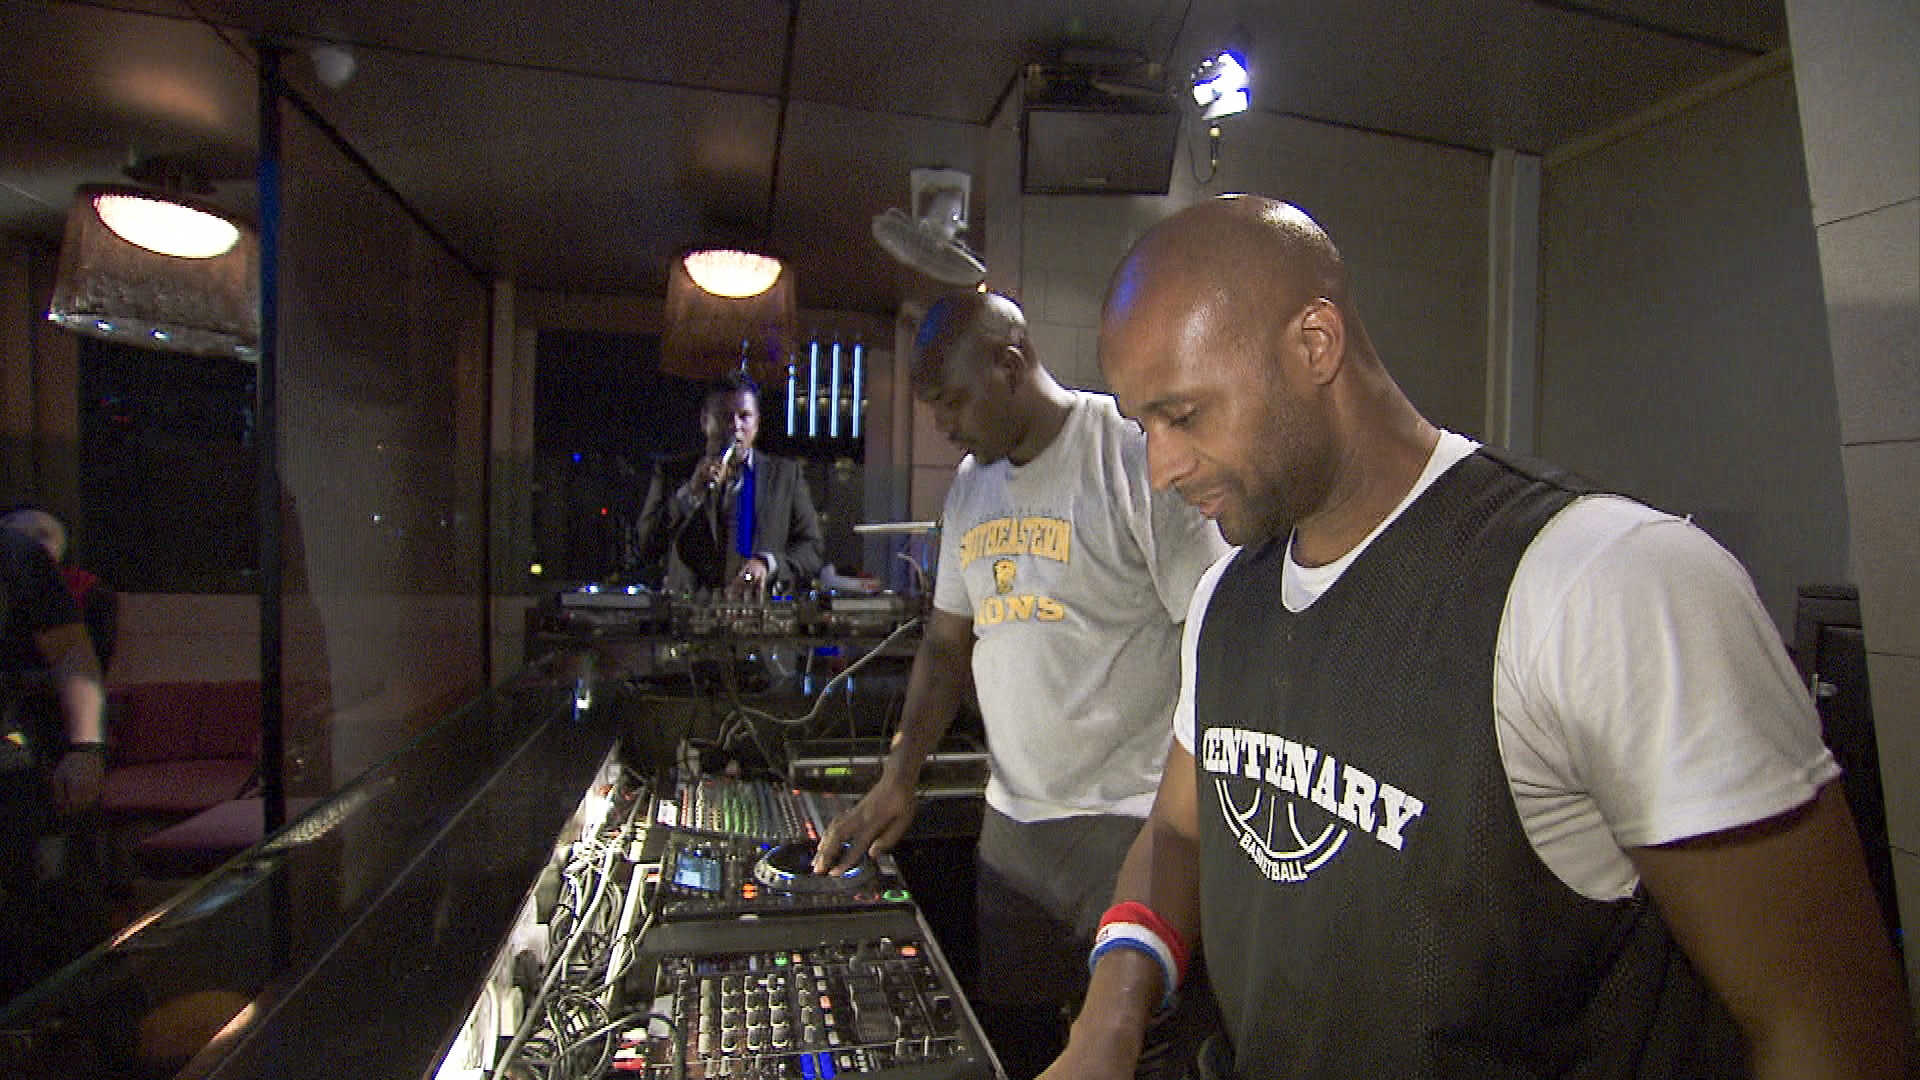 Learning how to DJ in Season 24 Episode 4